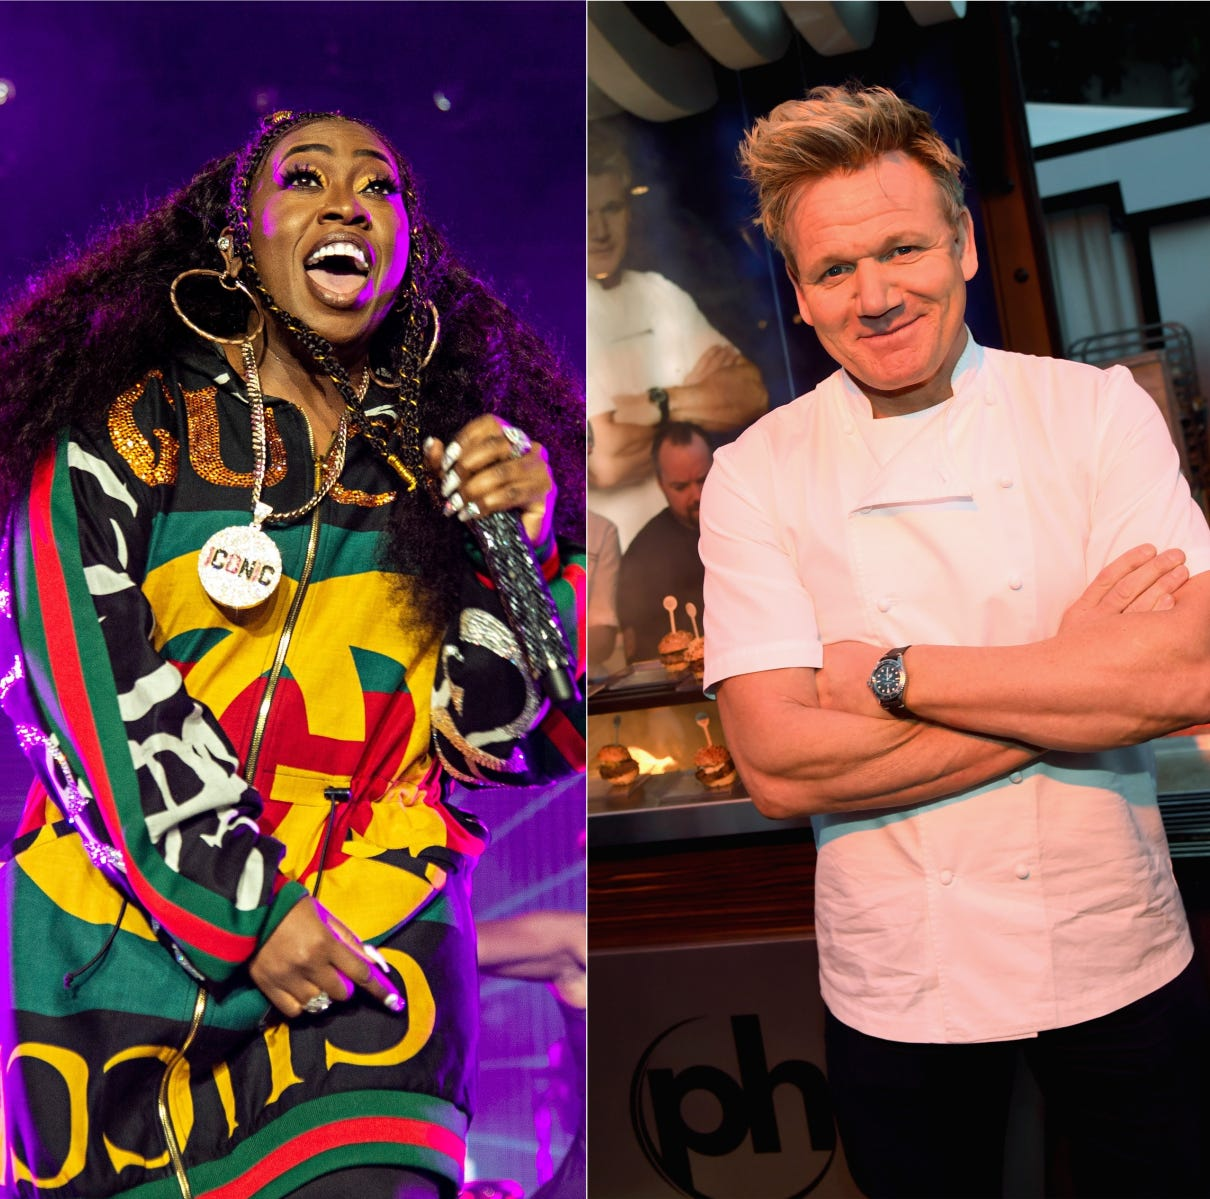 Missy Elliot, Gordon Ramsay and Kelly Clarkson all shared their fitness journeys in 2018.